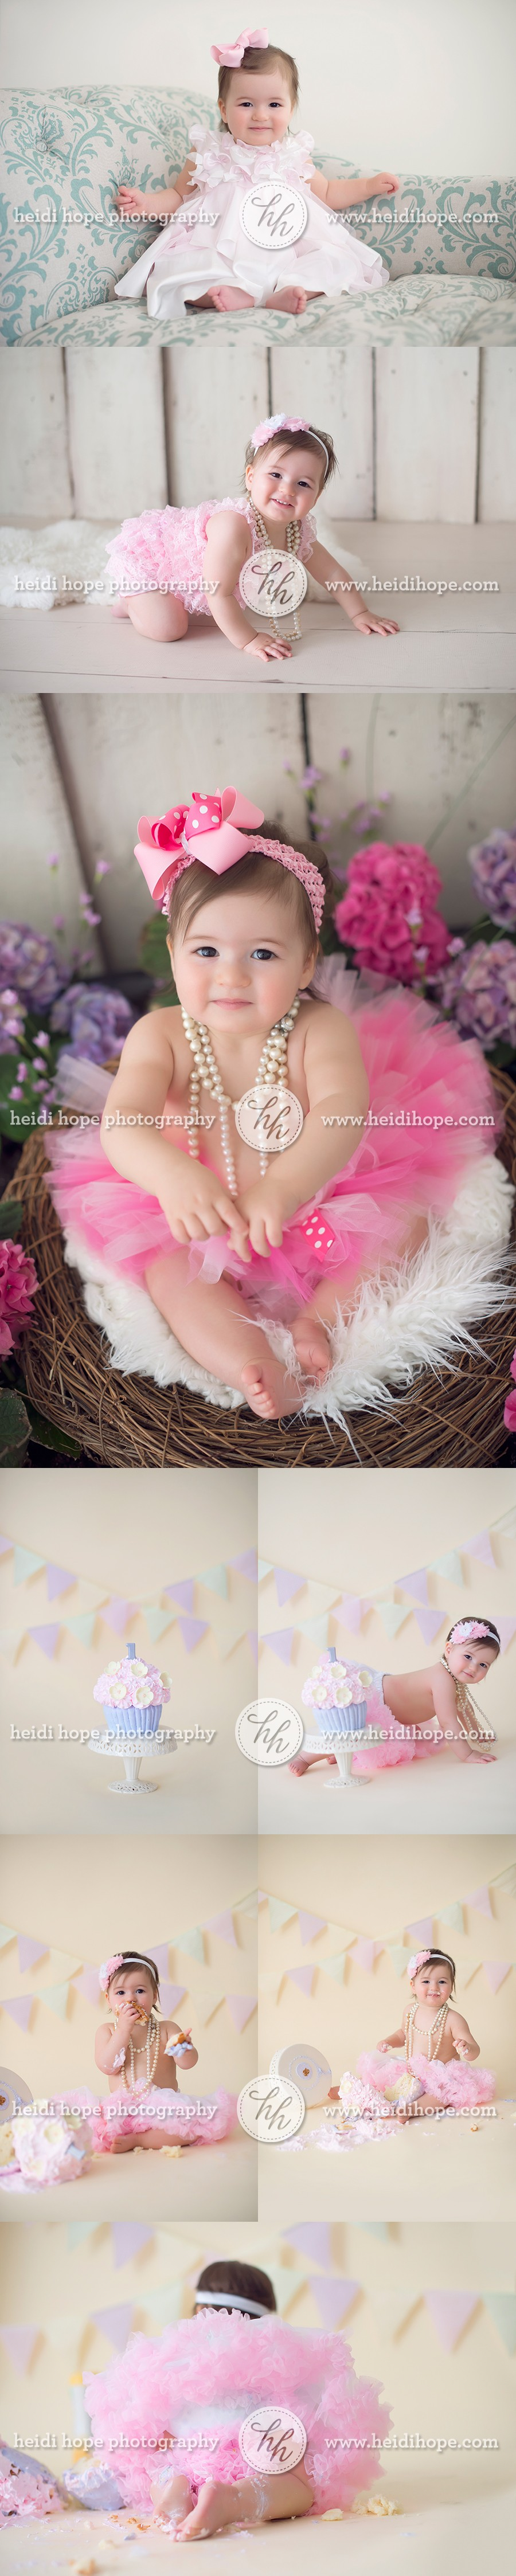 baby girl first birthday cake smash photographer